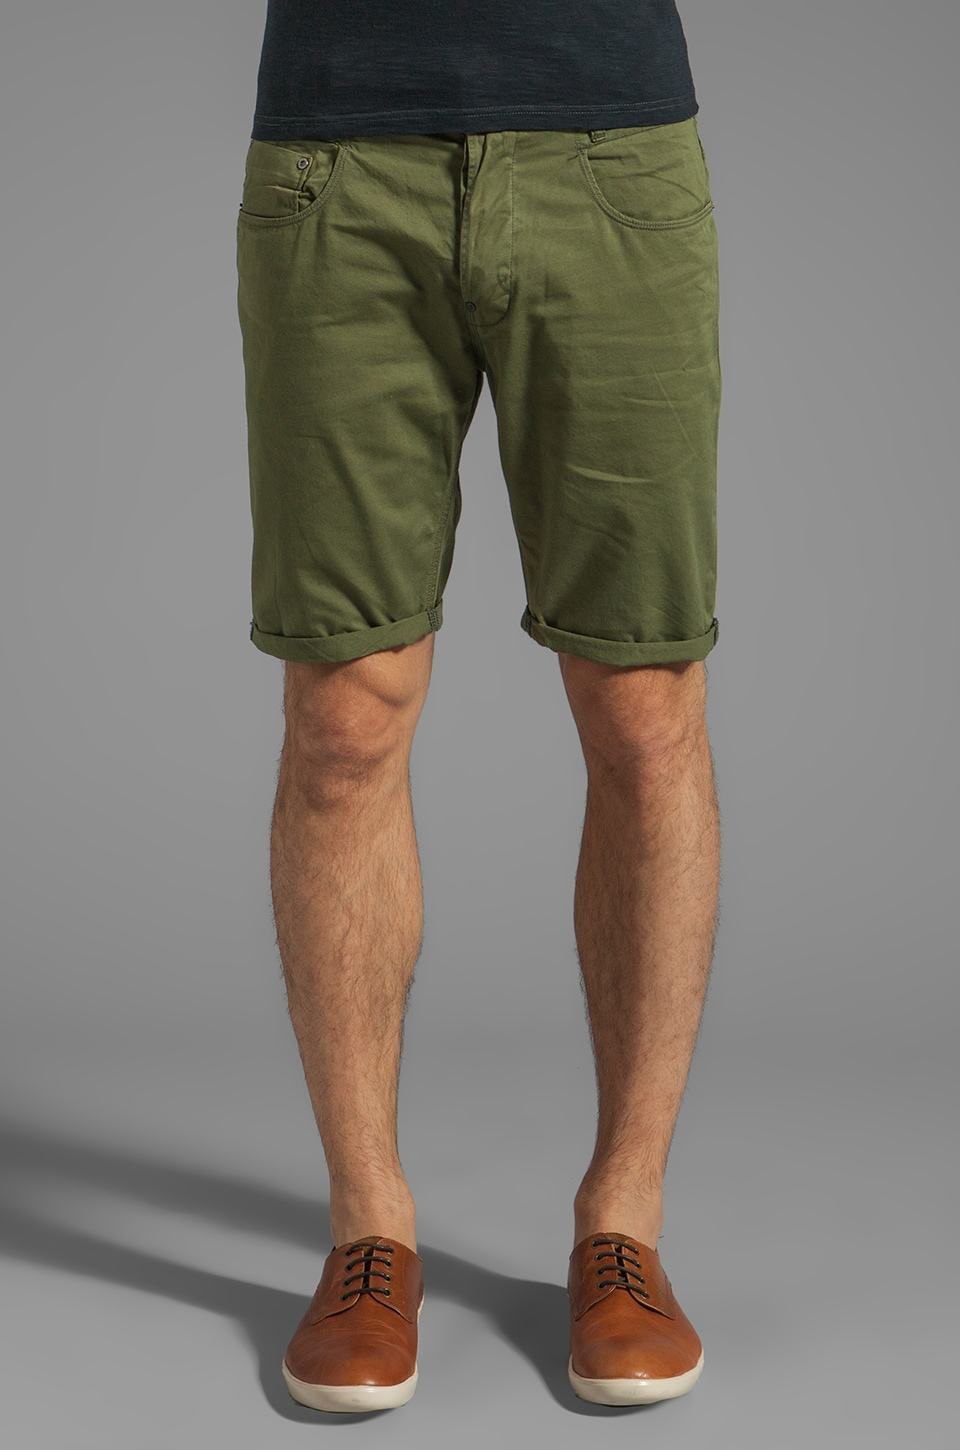 G-Star New Radar Tapered 1/2 Short in Sage